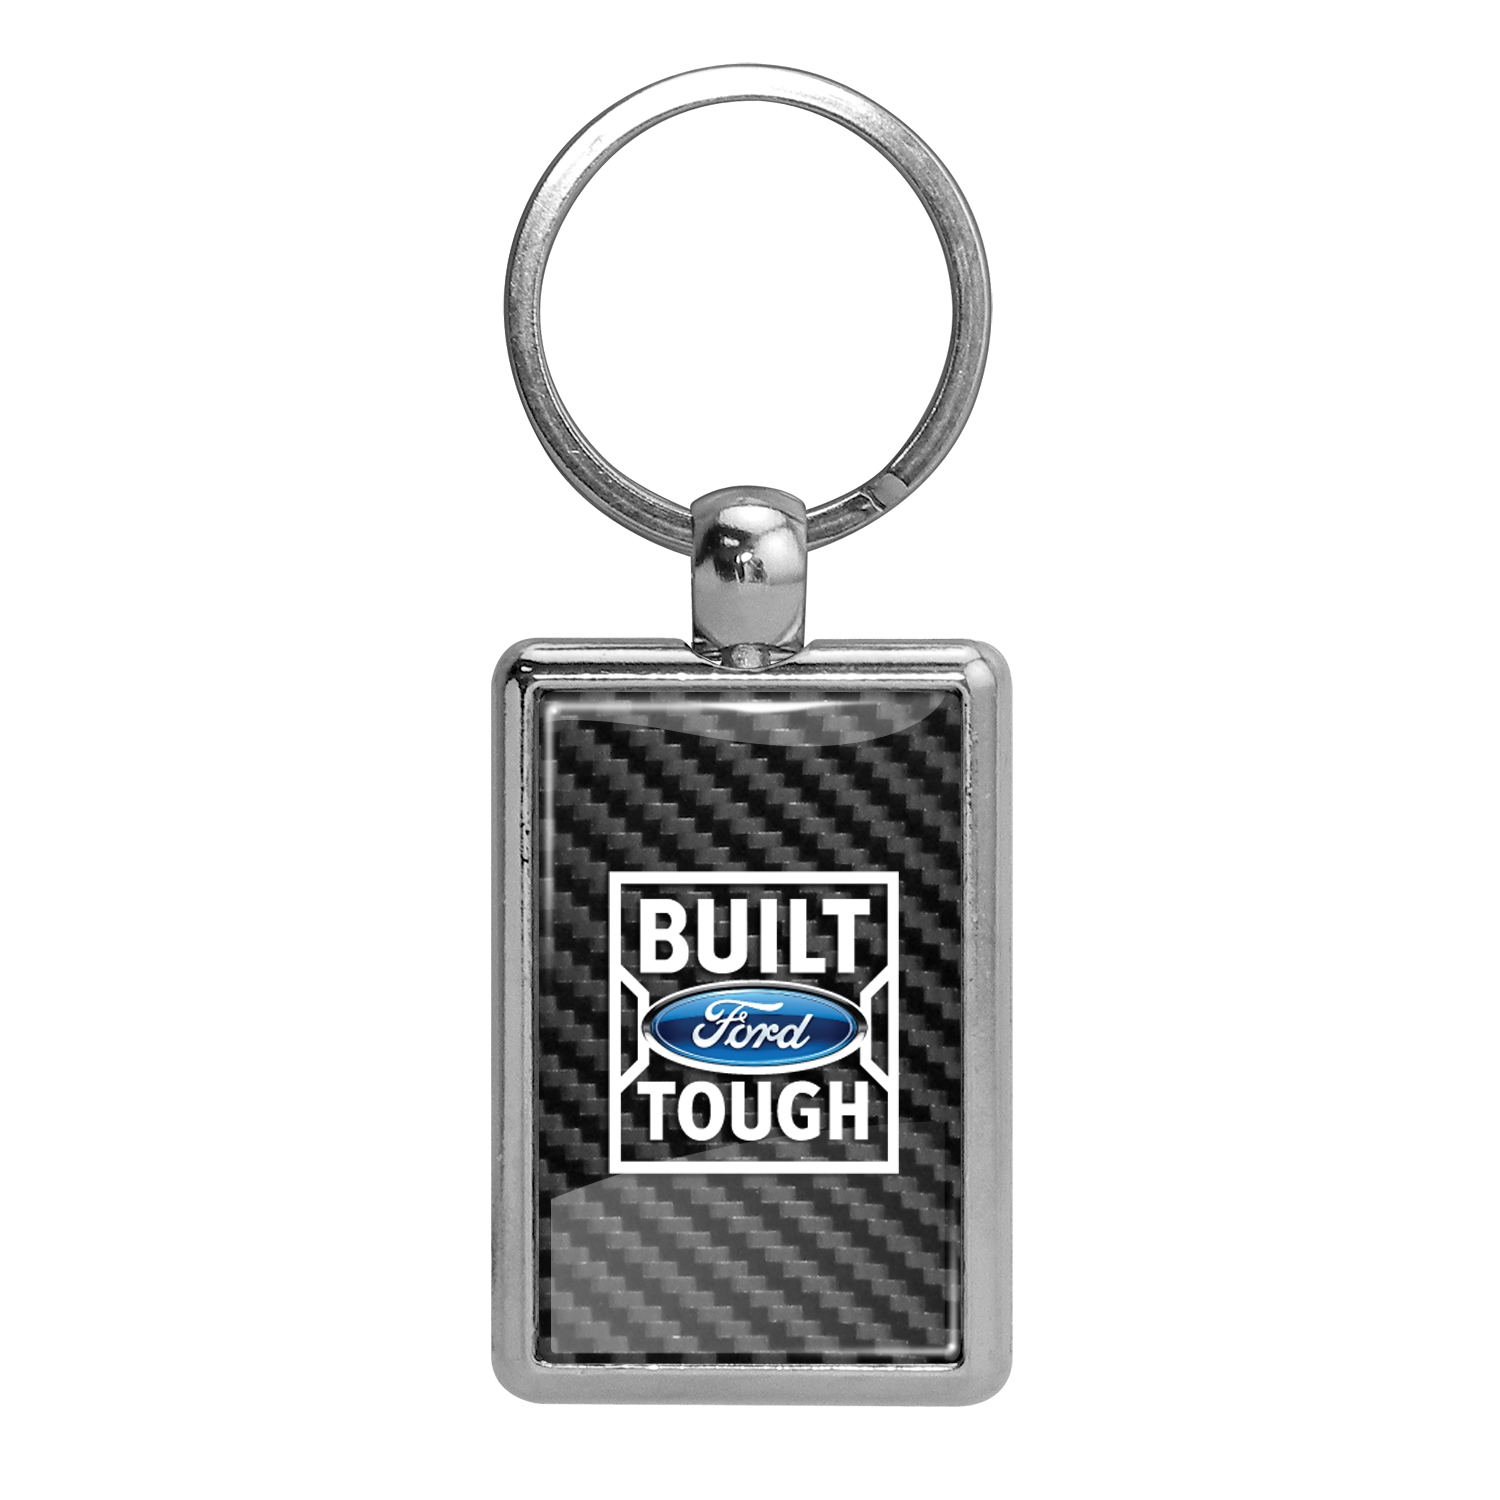 Ford Built Ford Tough in Color on Carbon Fiber Backing Brush Rectangle Metal Key Chain